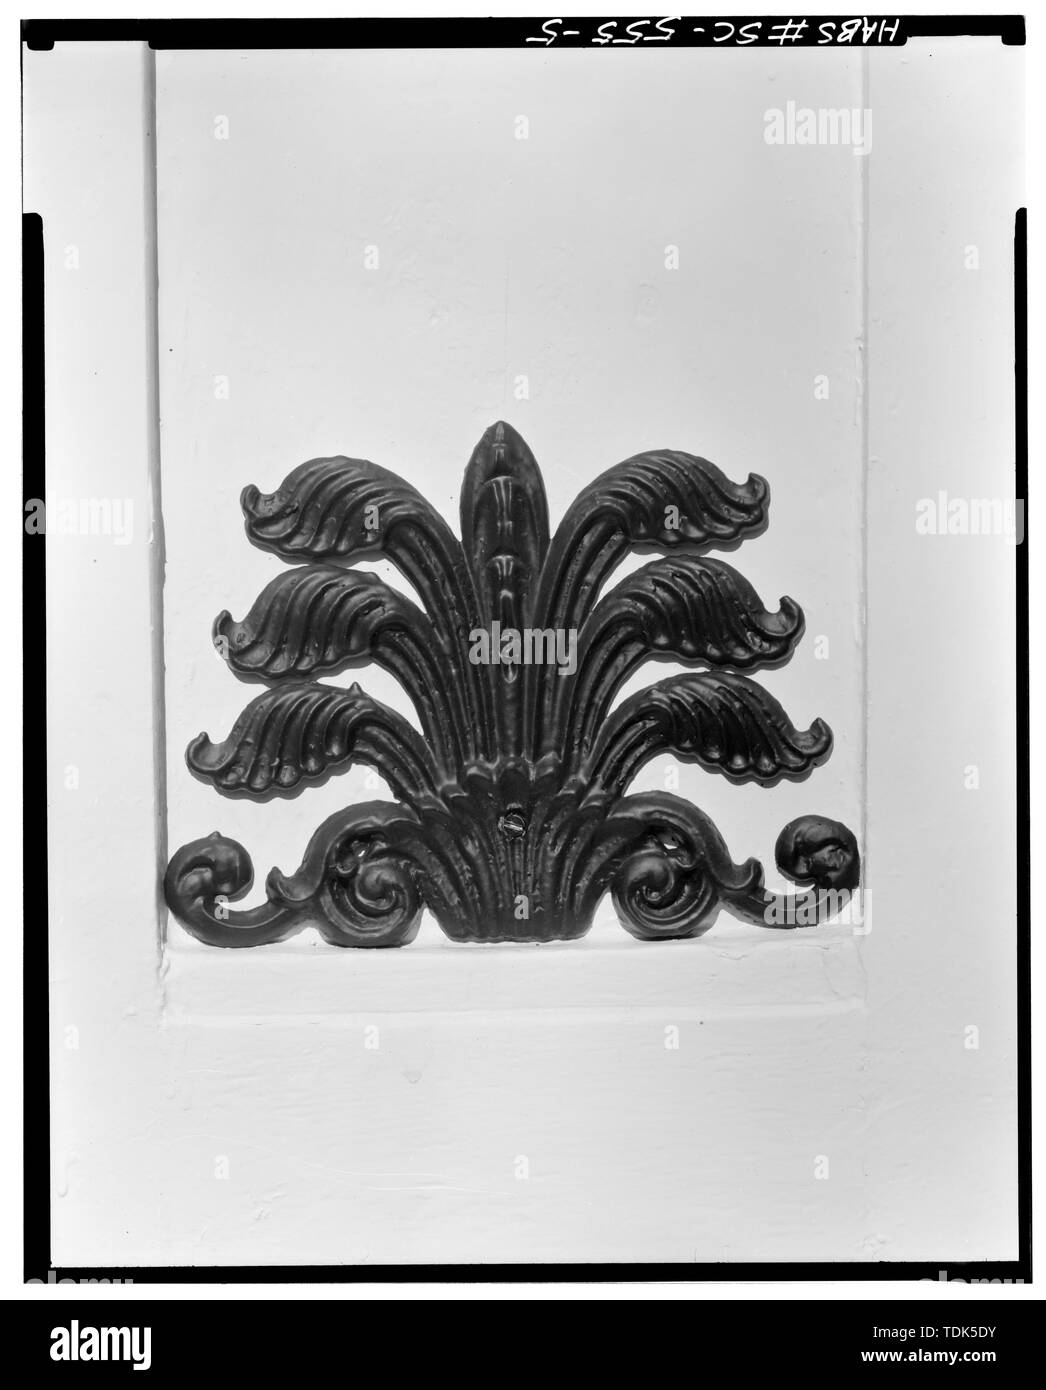 ORNAMENT ON COLUMNS AND MAIN ENTRY - 60 Hasell Street (Mansion), Charleston, Charleston County, SC - Stock Image